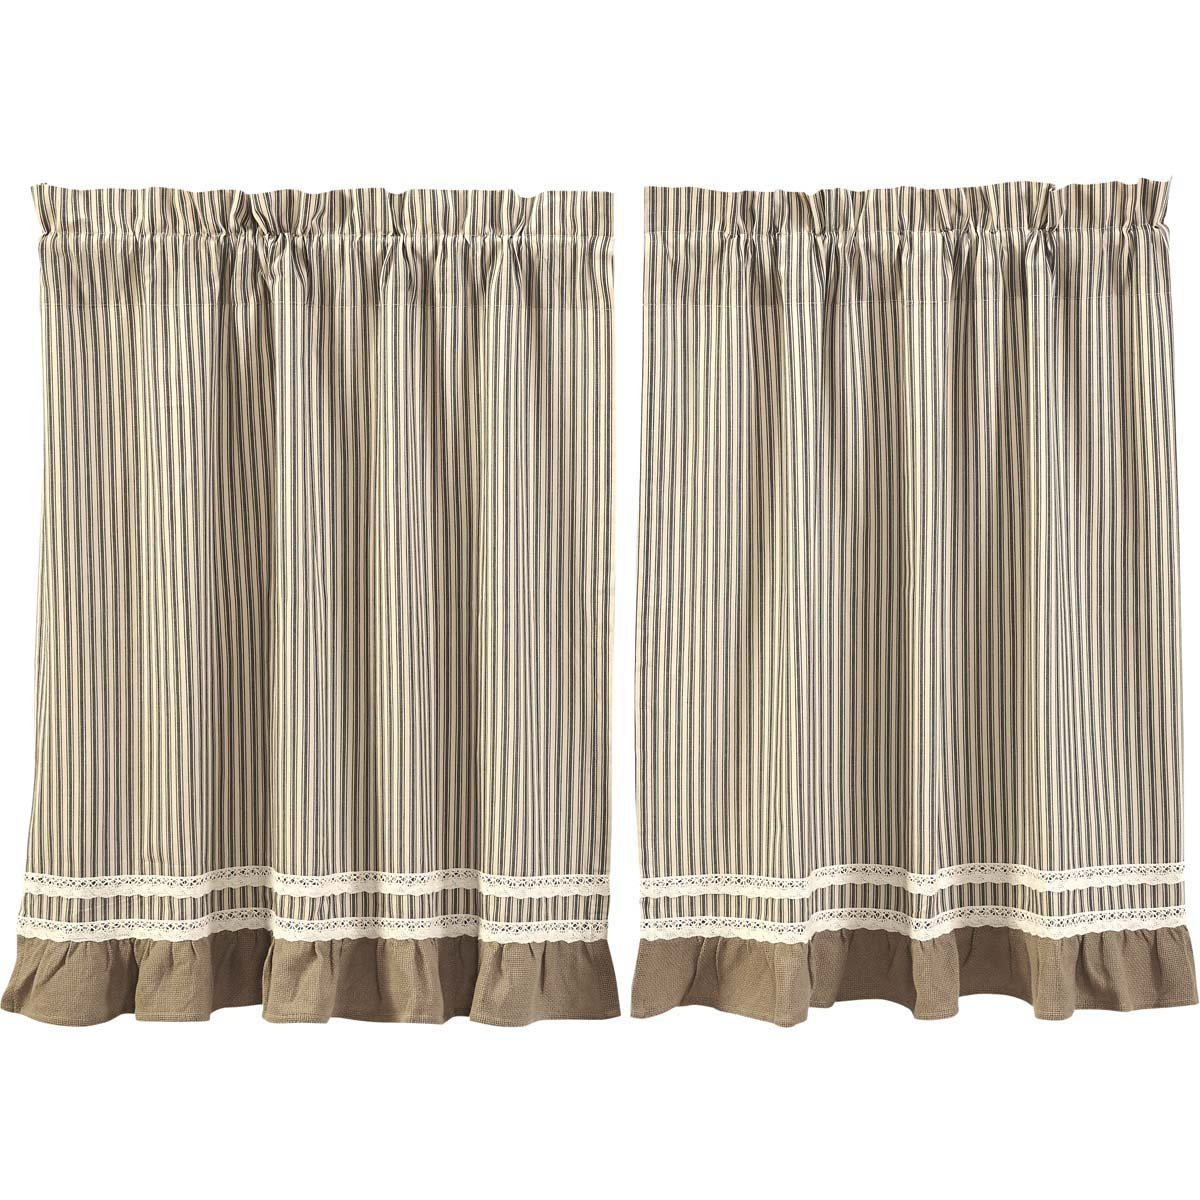 Vhc Brands Classic Country Farmhouse Kitchen Window Curtains Kendra Stripe White Tier Pair, L36 X W36, Red Regarding Widely Used Rod Pocket Cotton Striped Lace Cotton Burlap Kitchen Curtains (View 9 of 20)